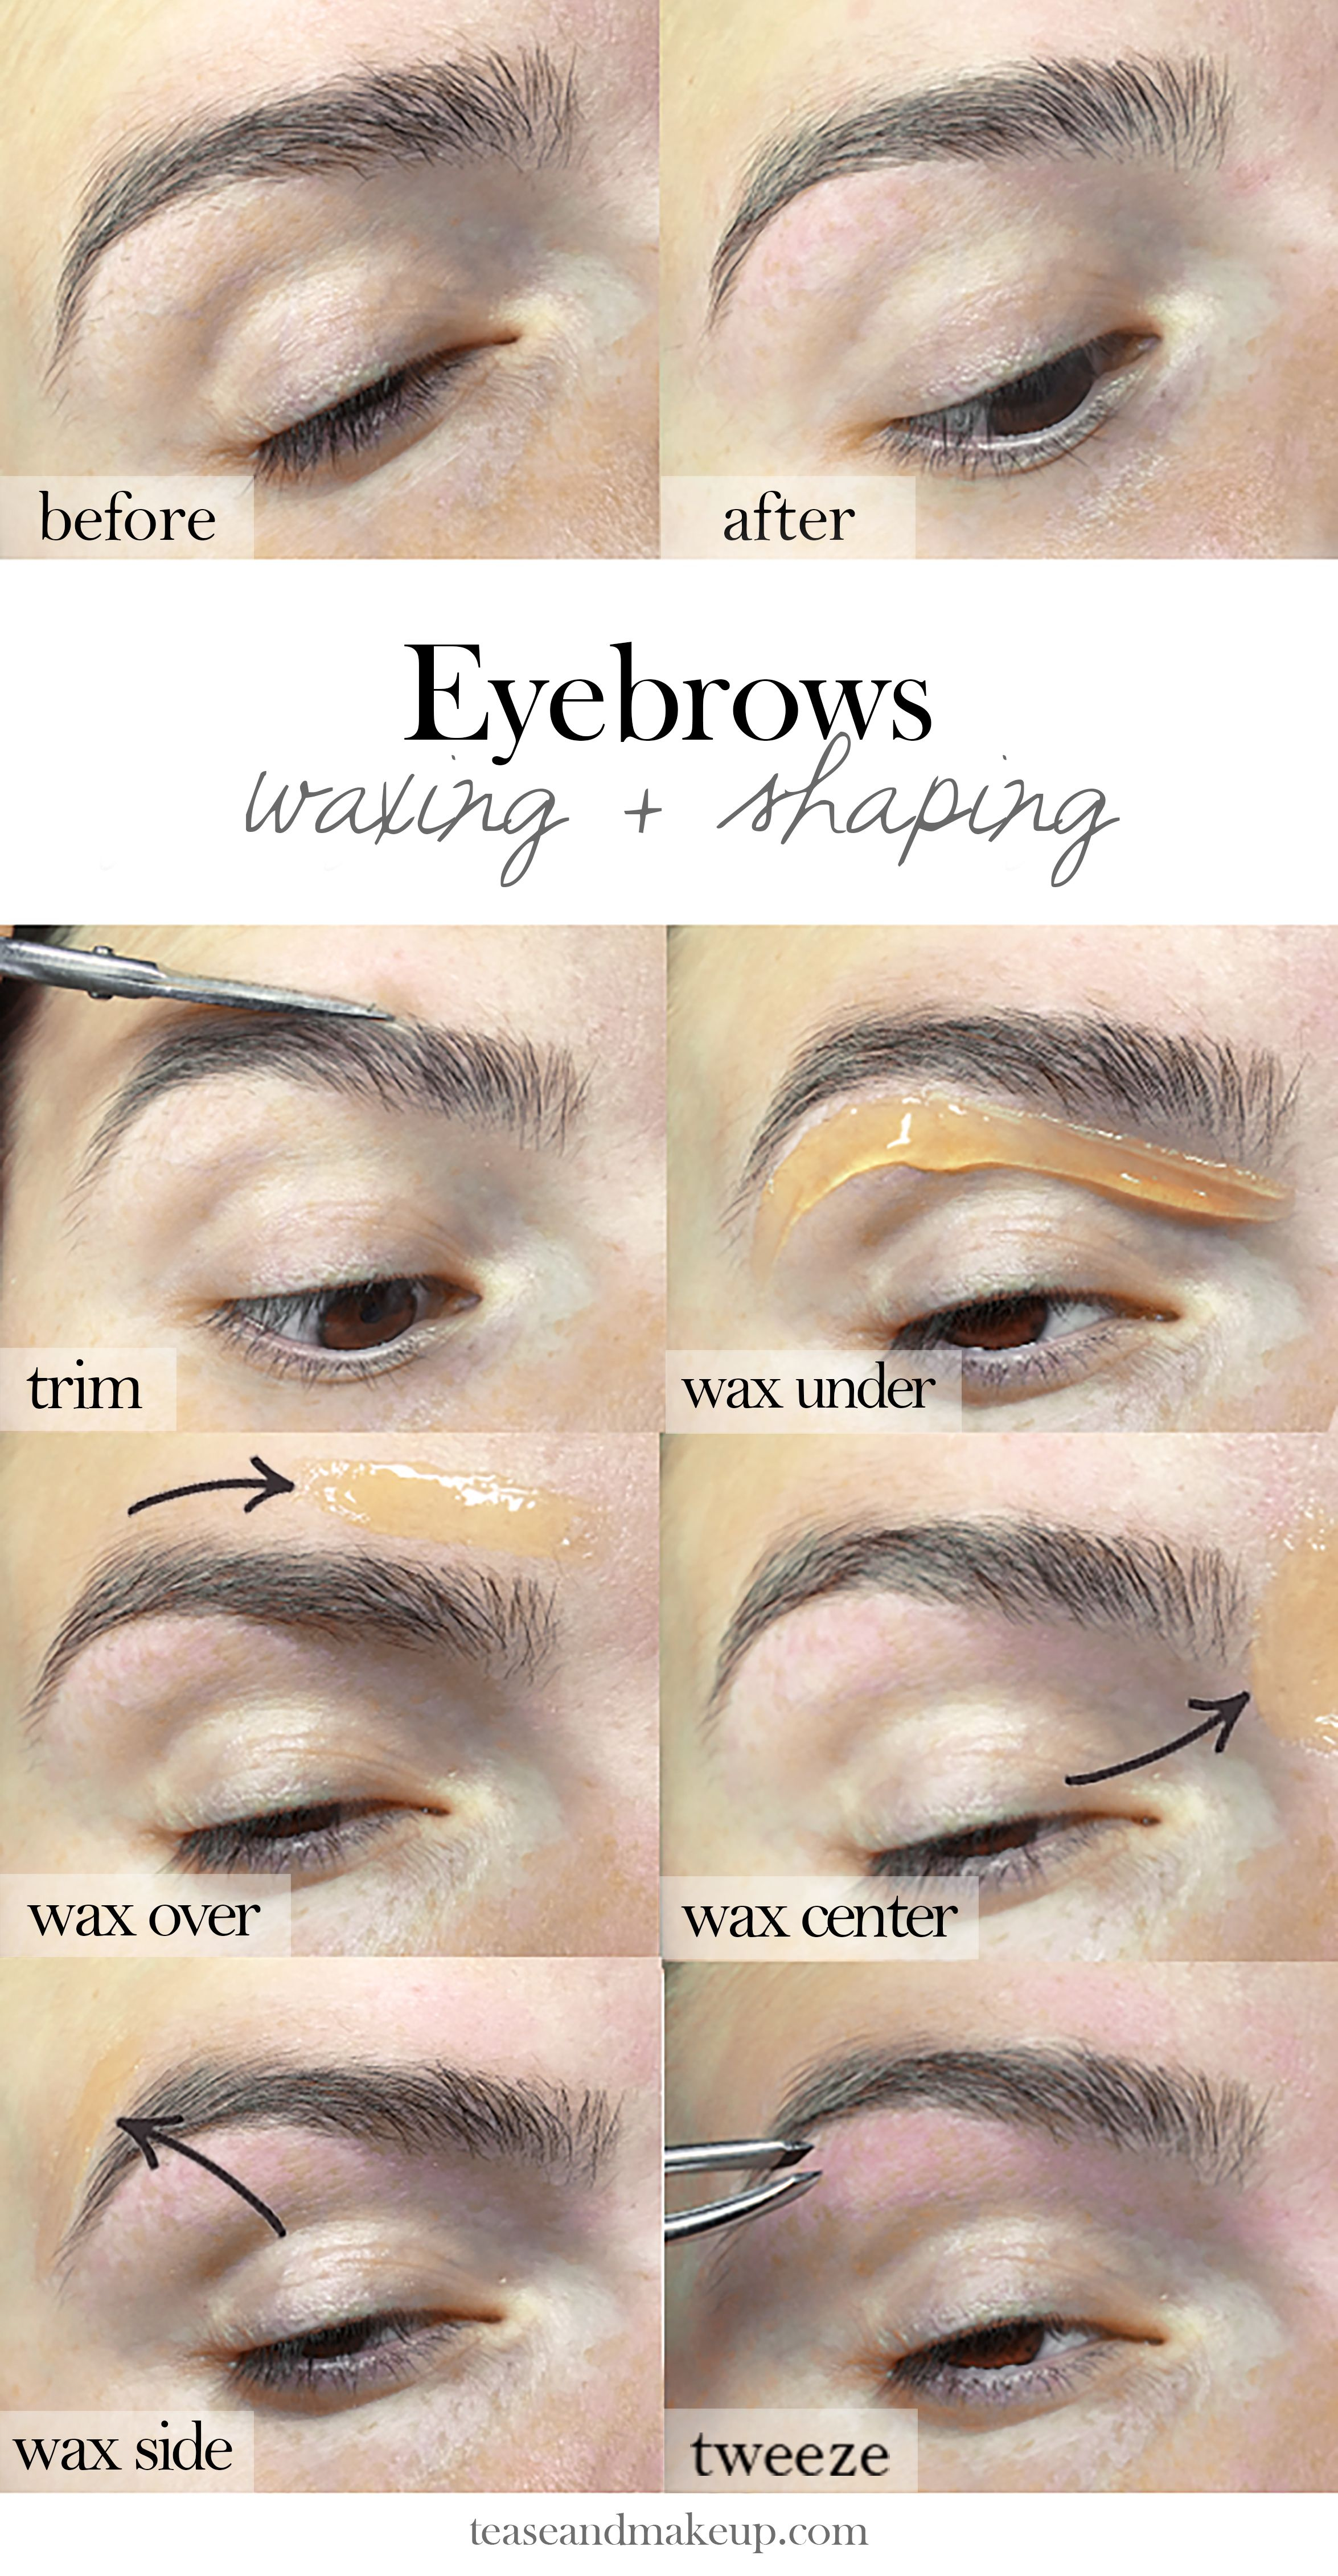 Trim Eyebrow Shaper : eyebrow, shaper, Eyebrow, Waxing, Shaping, Yourself, Tutorial, Brows…, Eyebrows, Home,, Waxed, Eyebrows,, Grooming